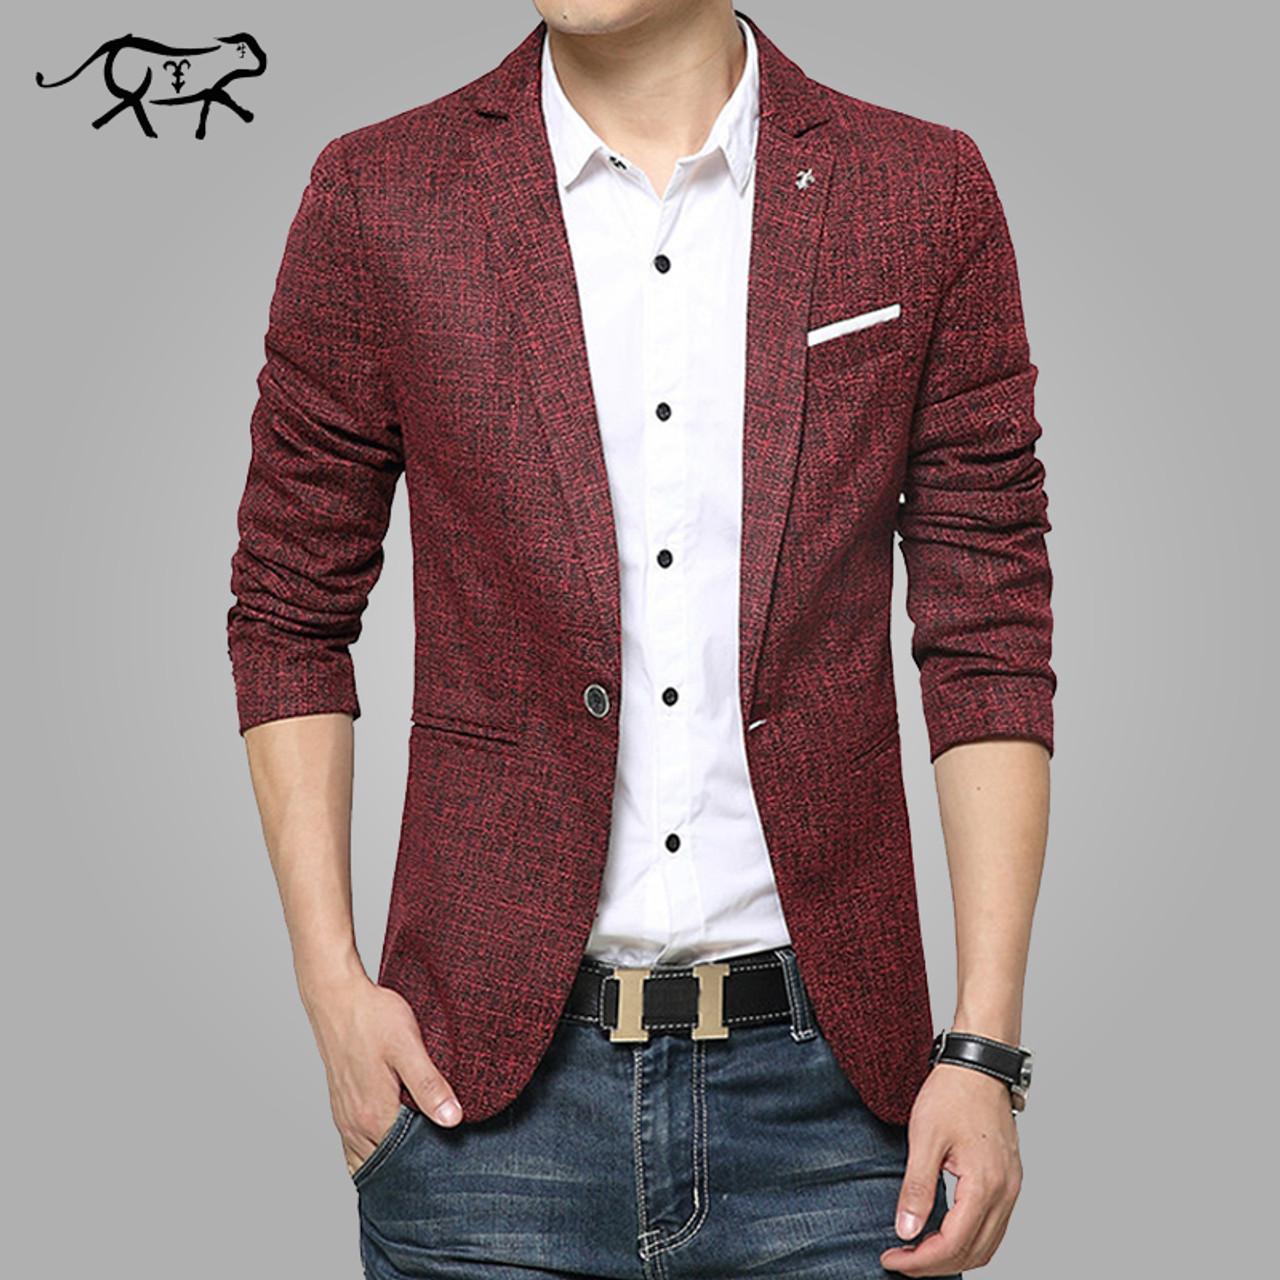 32f34ffb0221a ... 2017 New Mens Blazer Spring Fashion Suits For Men Top Quality Blazers  Slim Fit Jacket Outwear ...